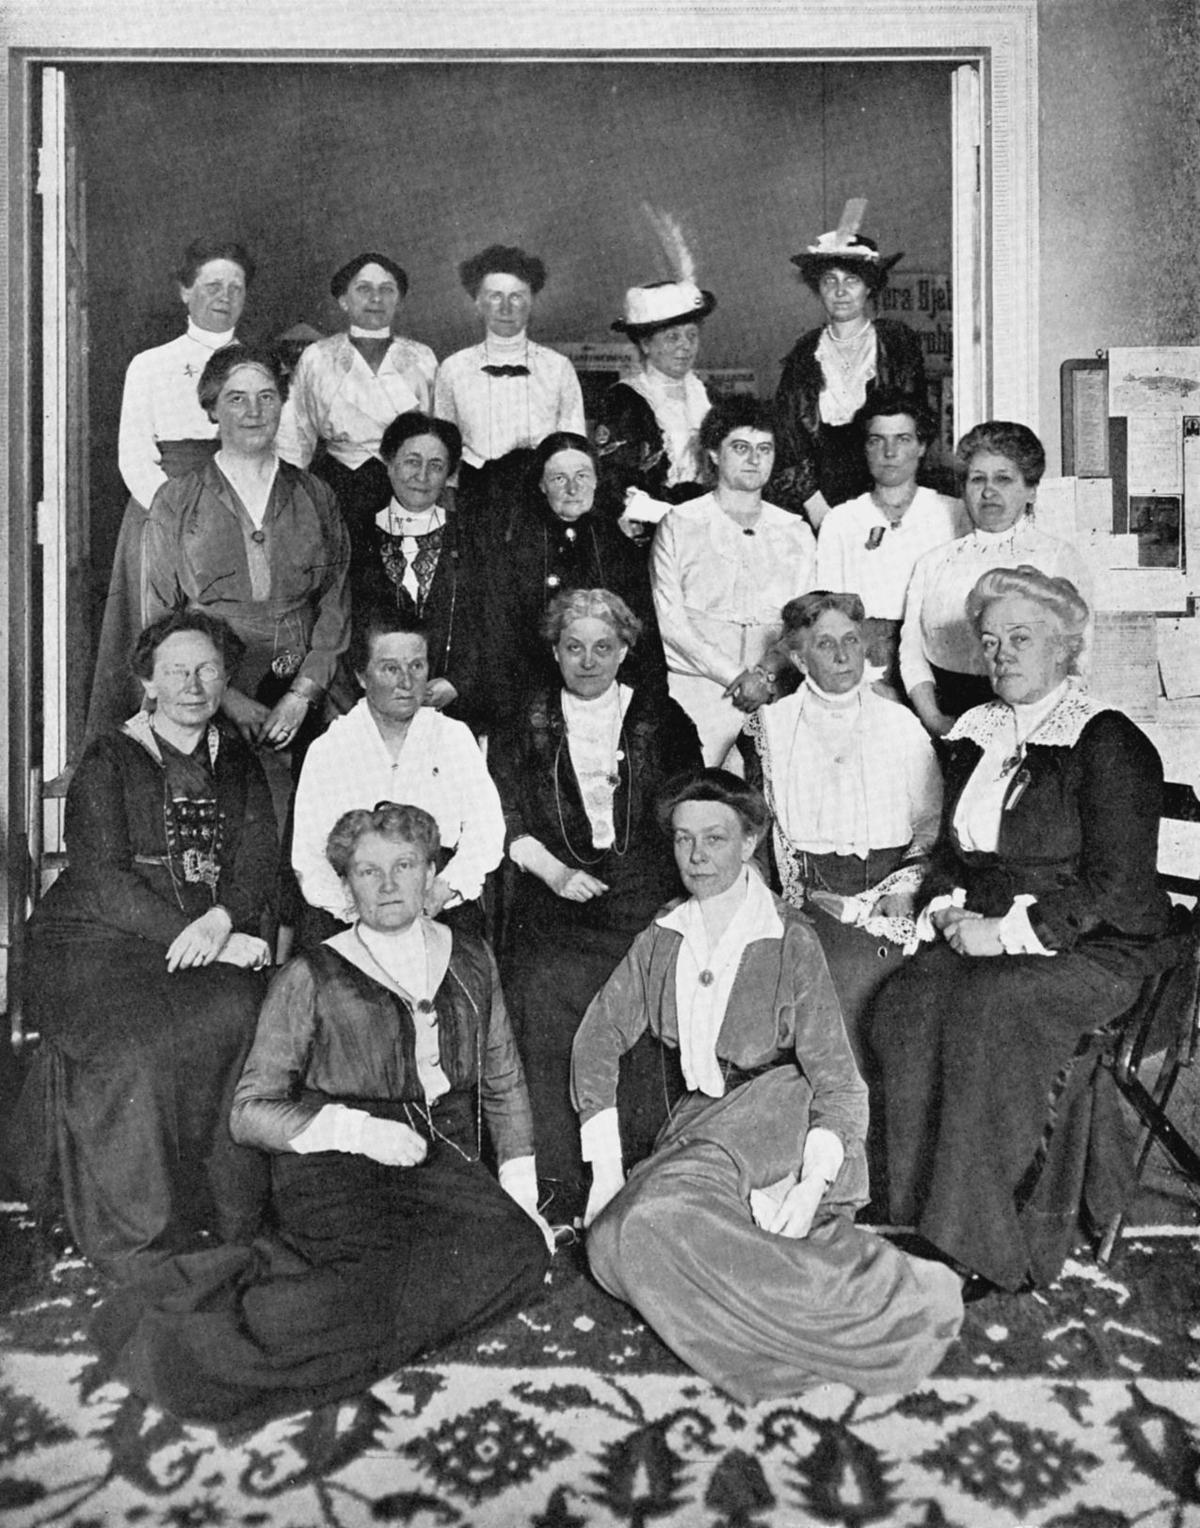 Leaders of international suffrage movement